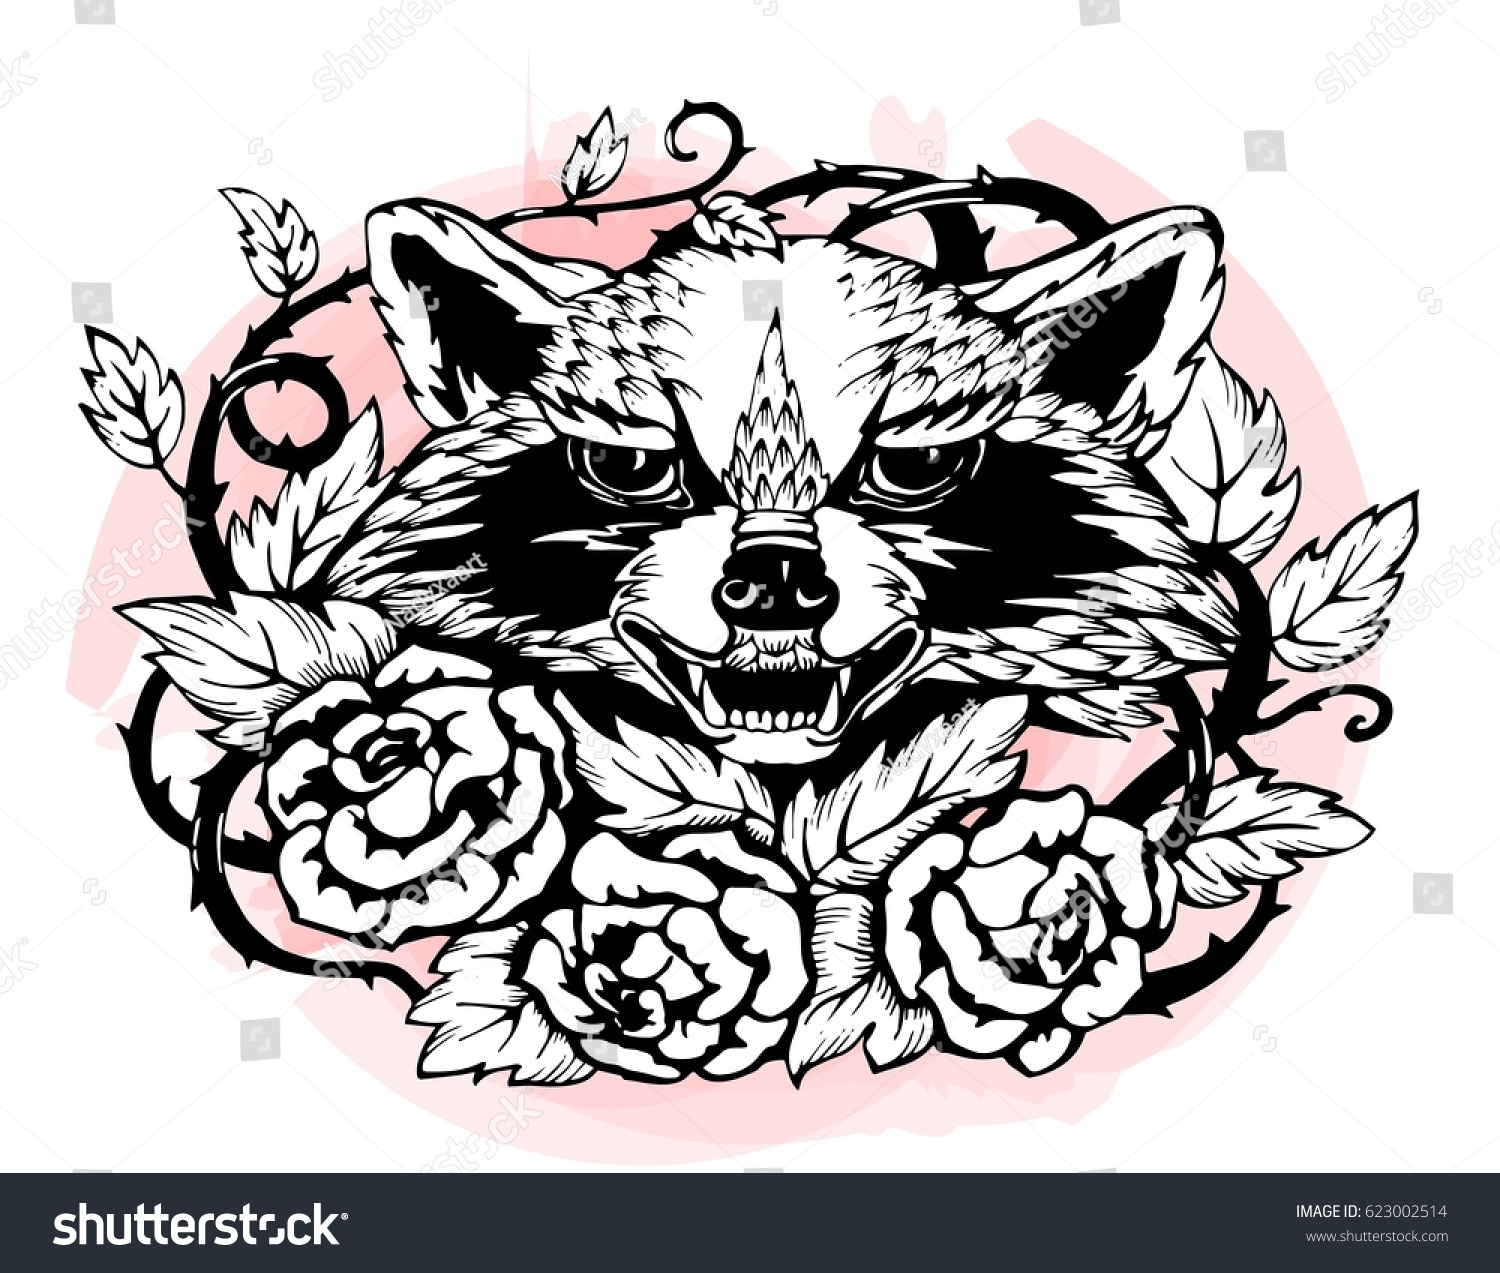 Angry Raccoon In Roses With Thorns Black And White Pattern For Tattoo Print Or